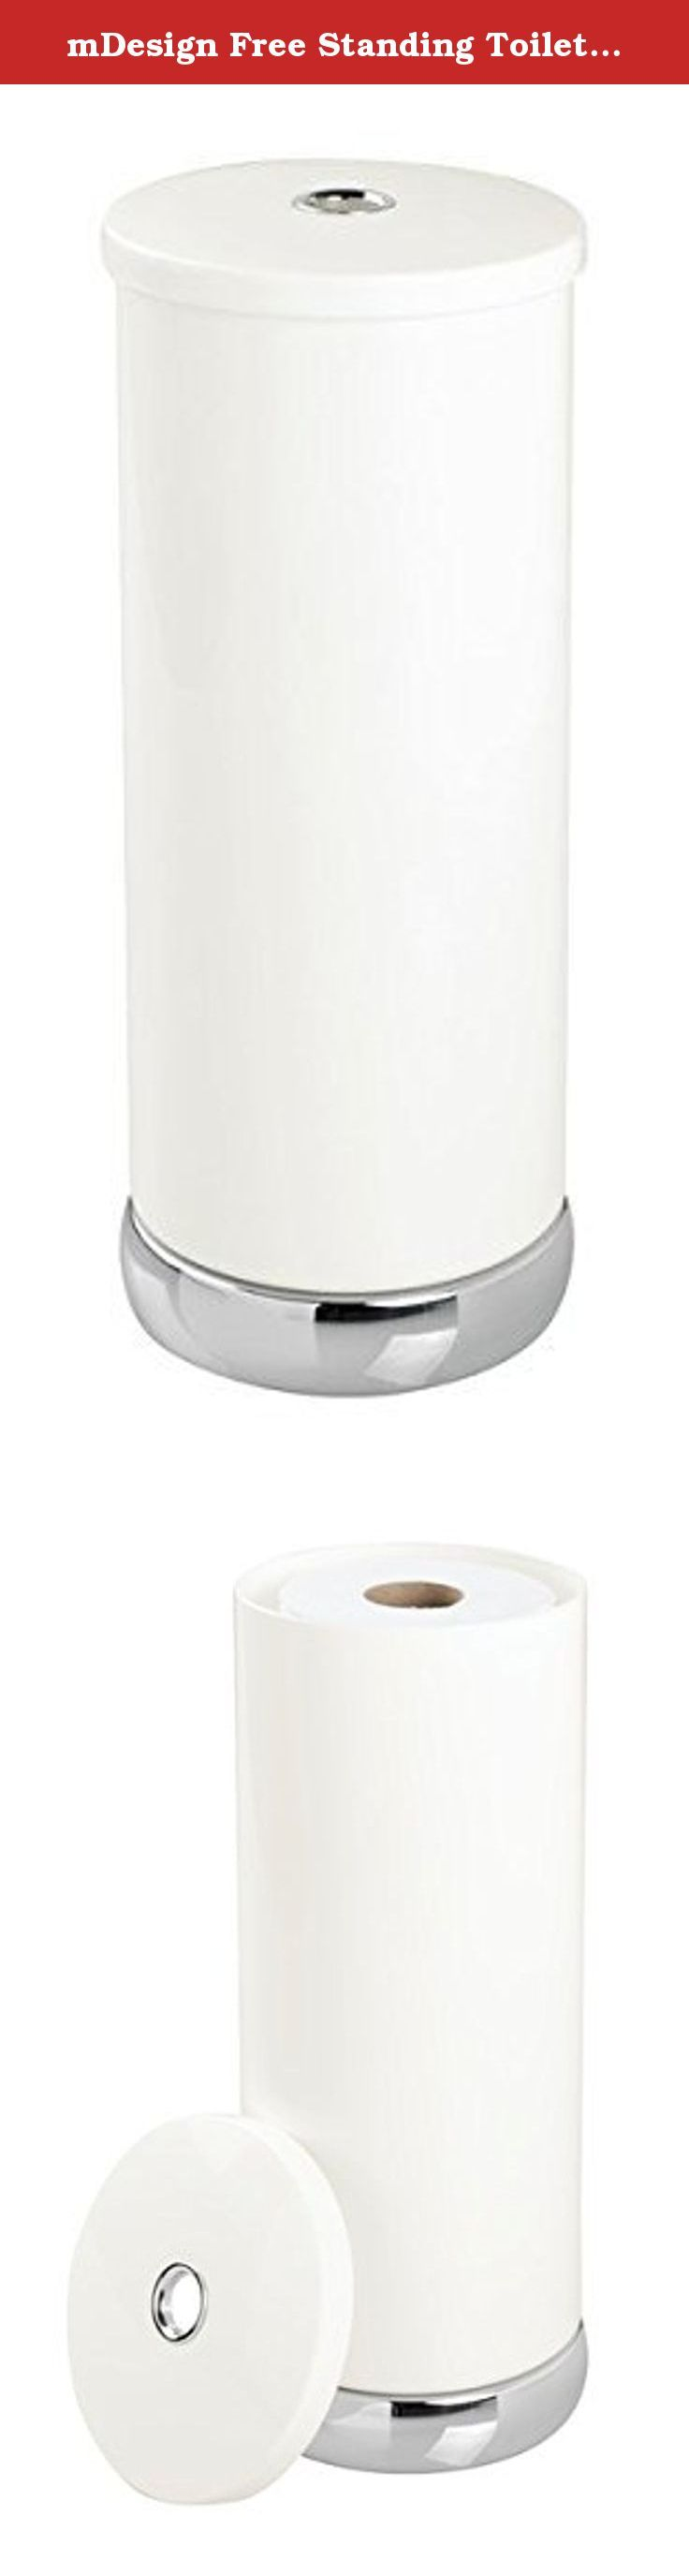 17 Best Ideas About Loo Roll Holders On Pinterest Shower